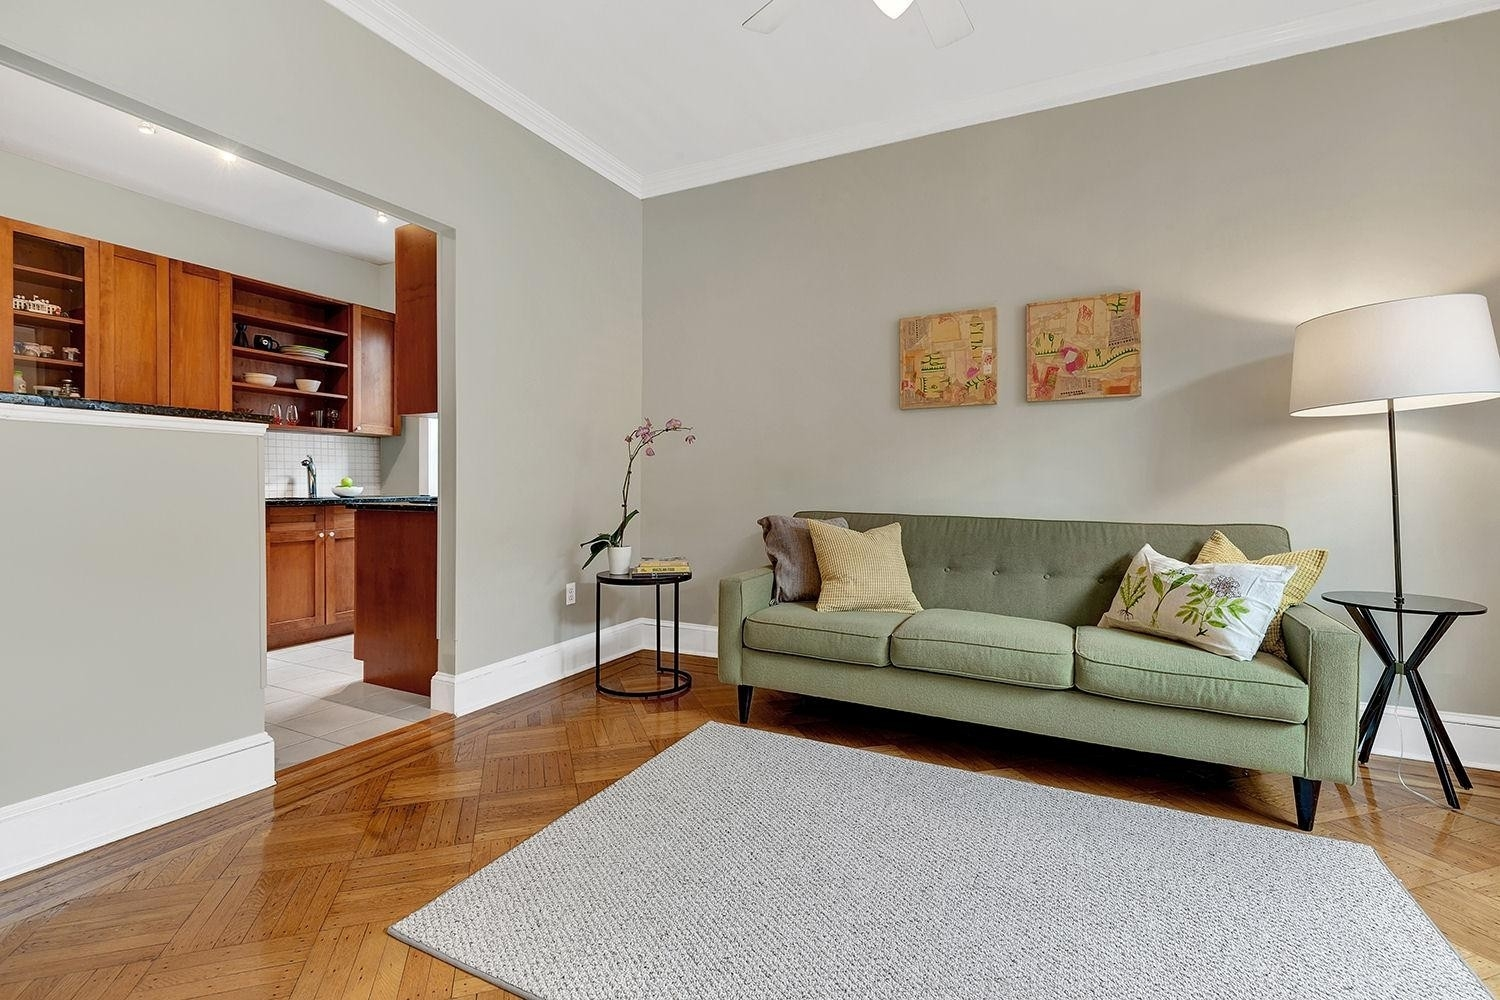 Property at 250 Seeley St, 9 Windsor Terrace, Brooklyn